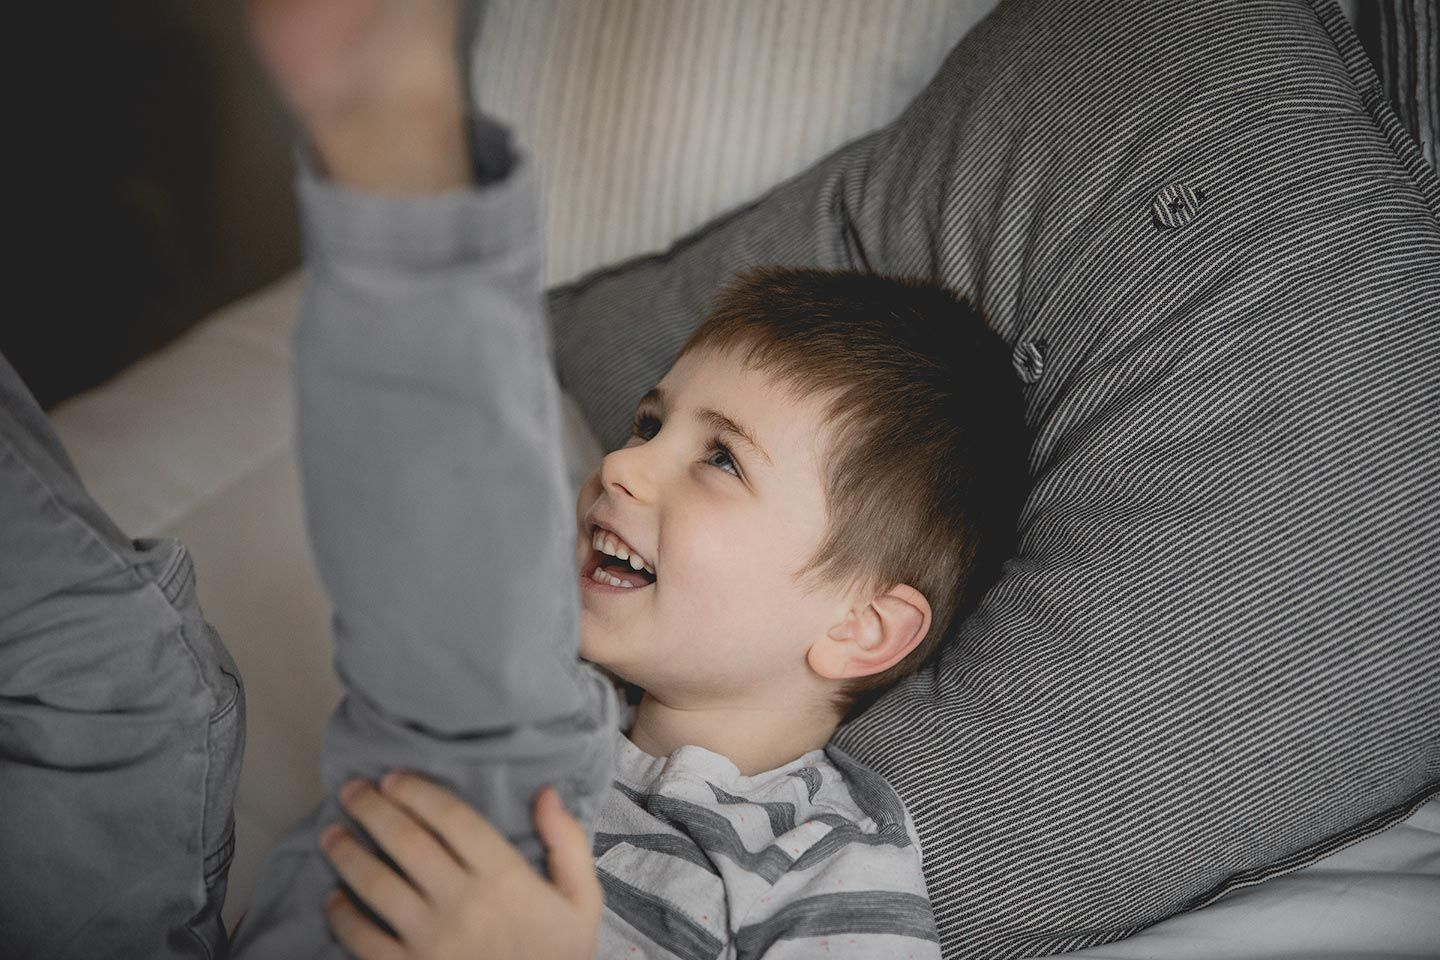 little boy laughing on a bed